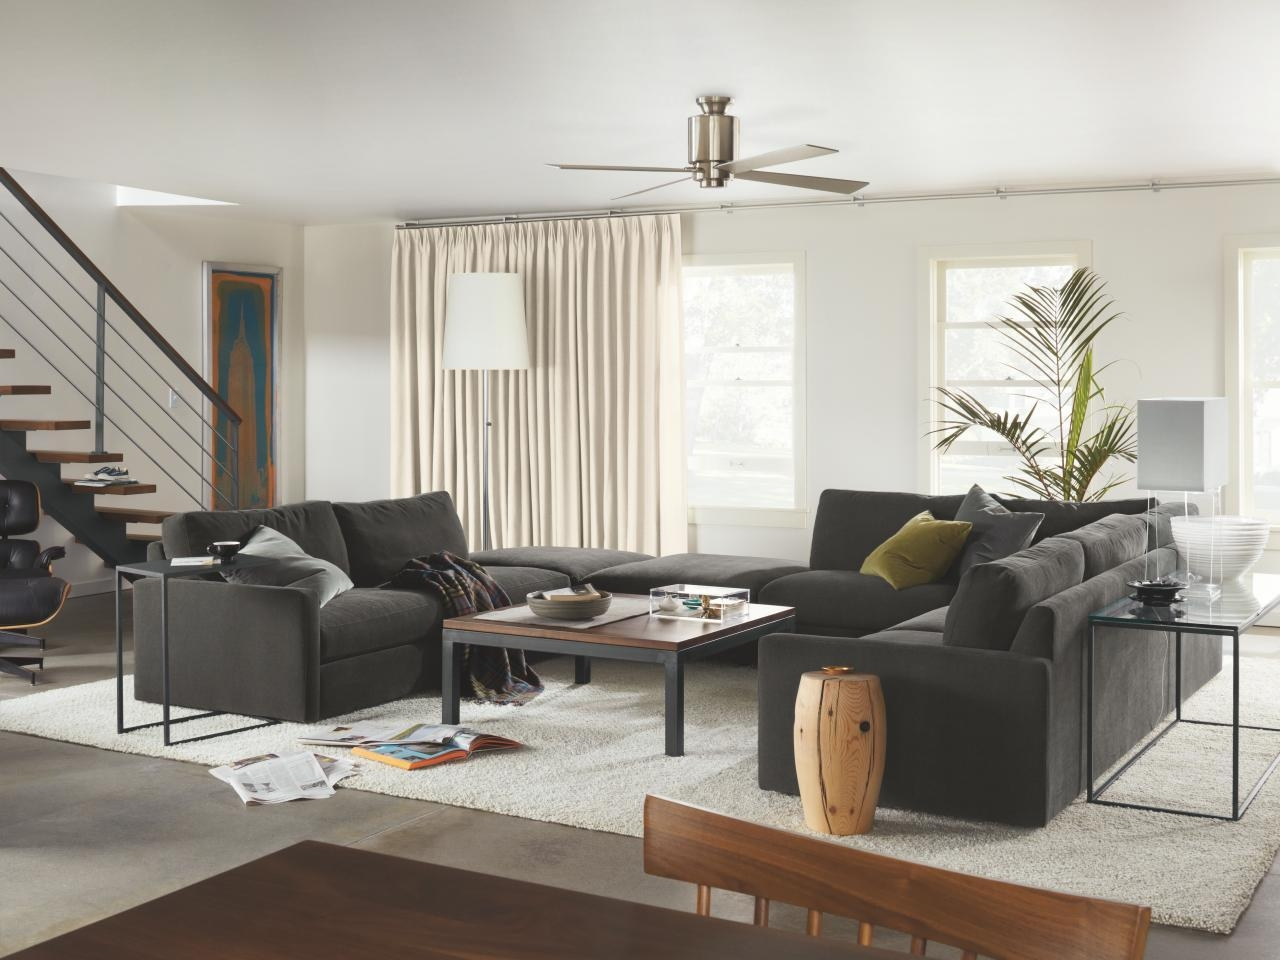 Living Room Layouts And Ideas | Hgtv Within Room And Board Sectional Sofa (View 15 of 20)